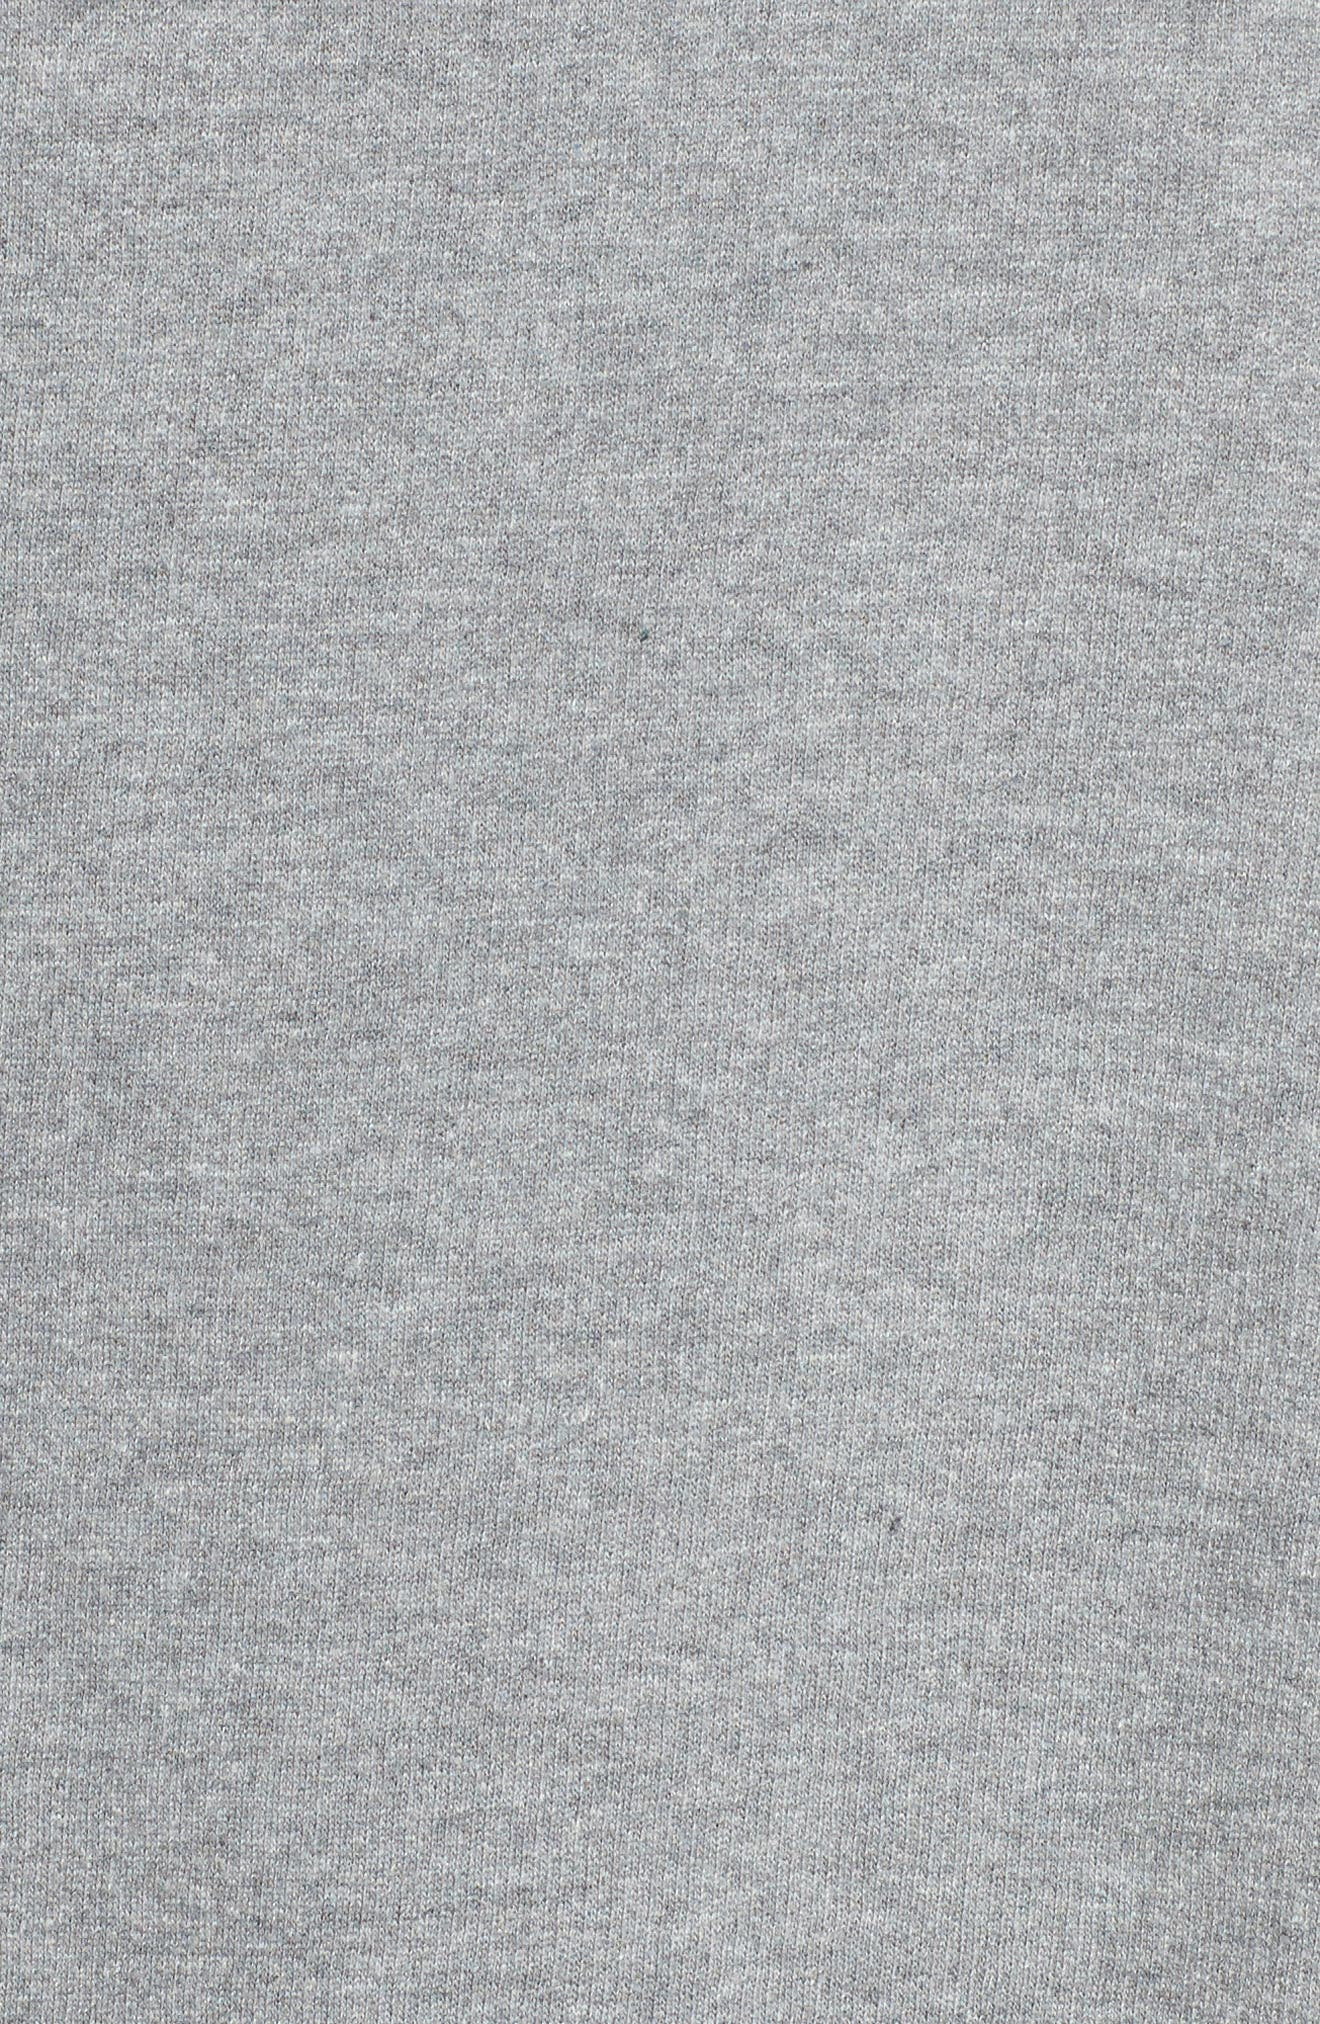 Crewneck Sweatshirt,                             Alternate thumbnail 5, color,                             030